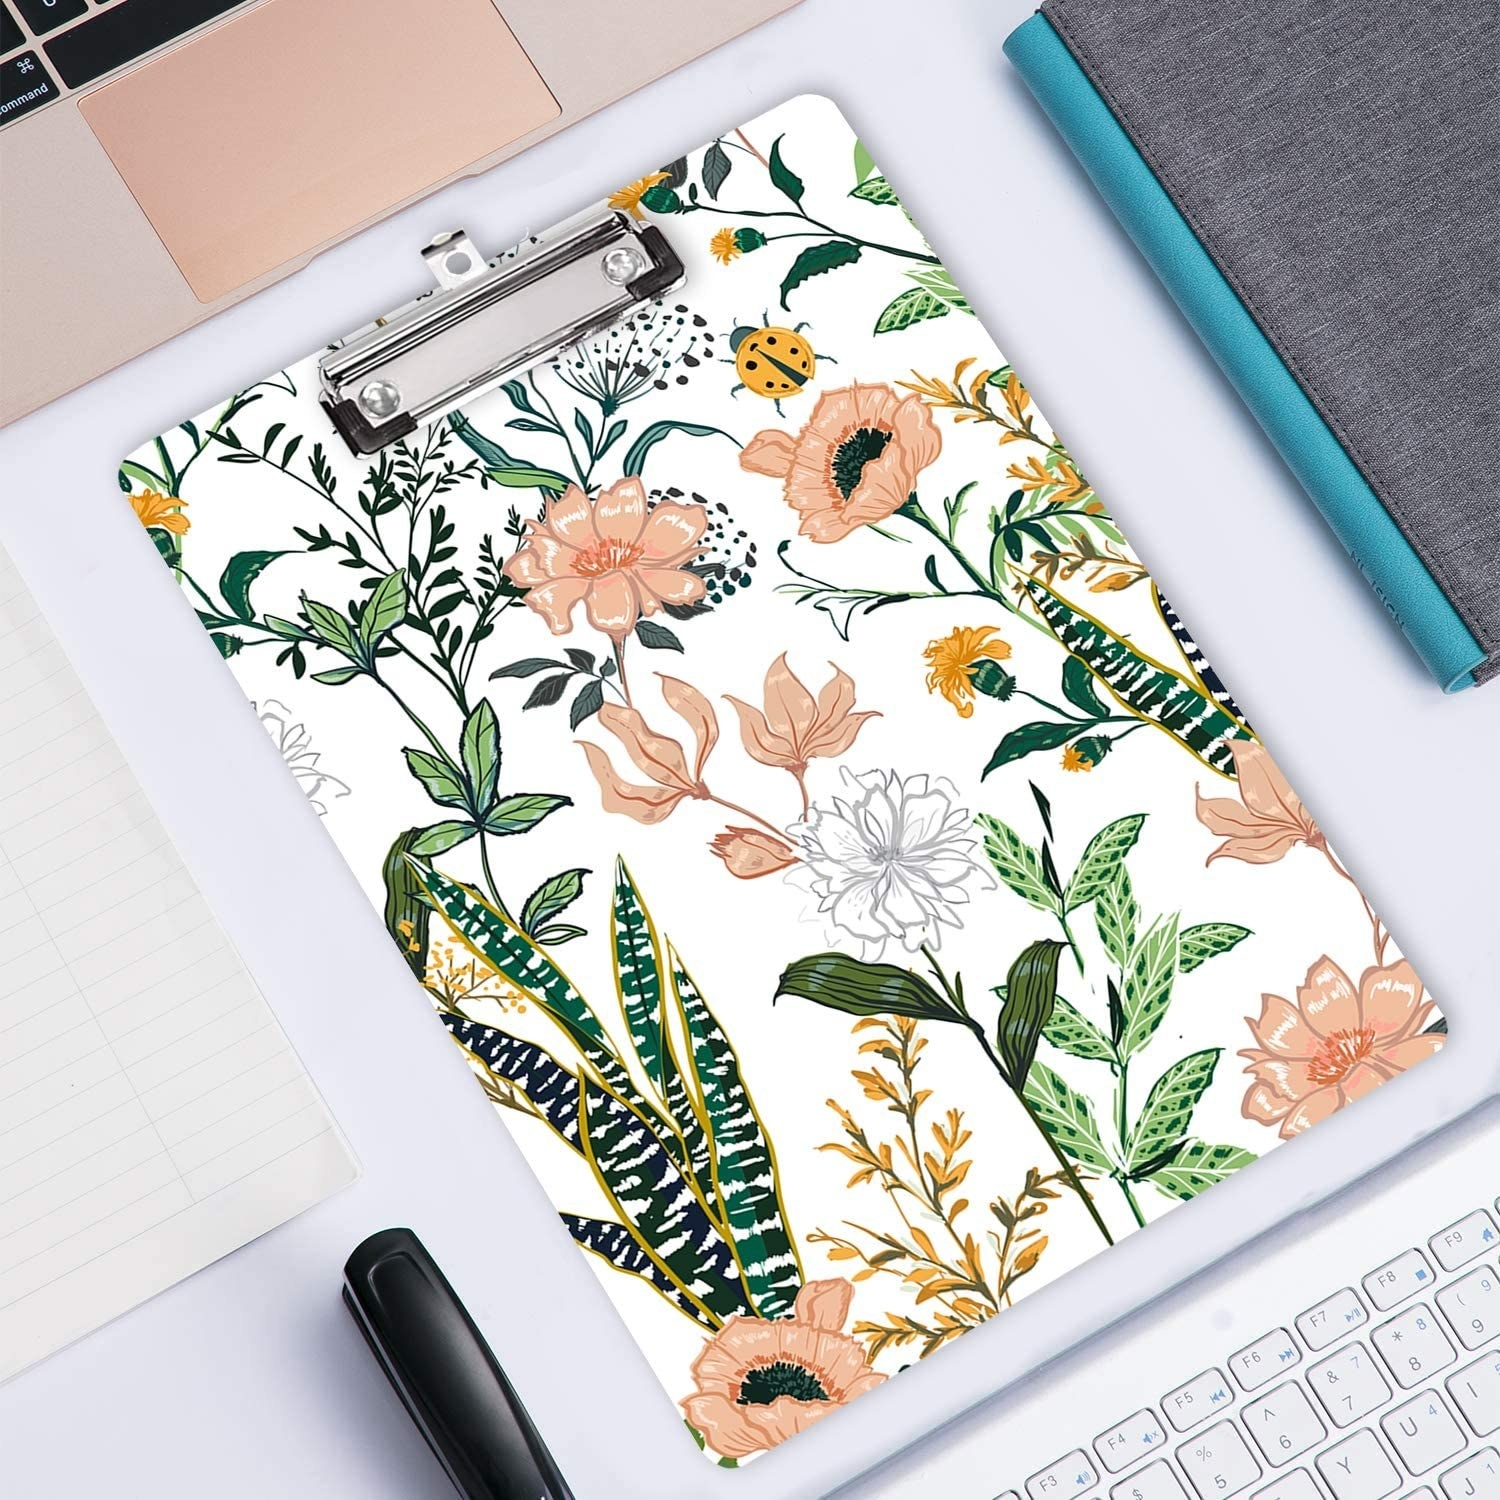 A floral clipboard on a desk